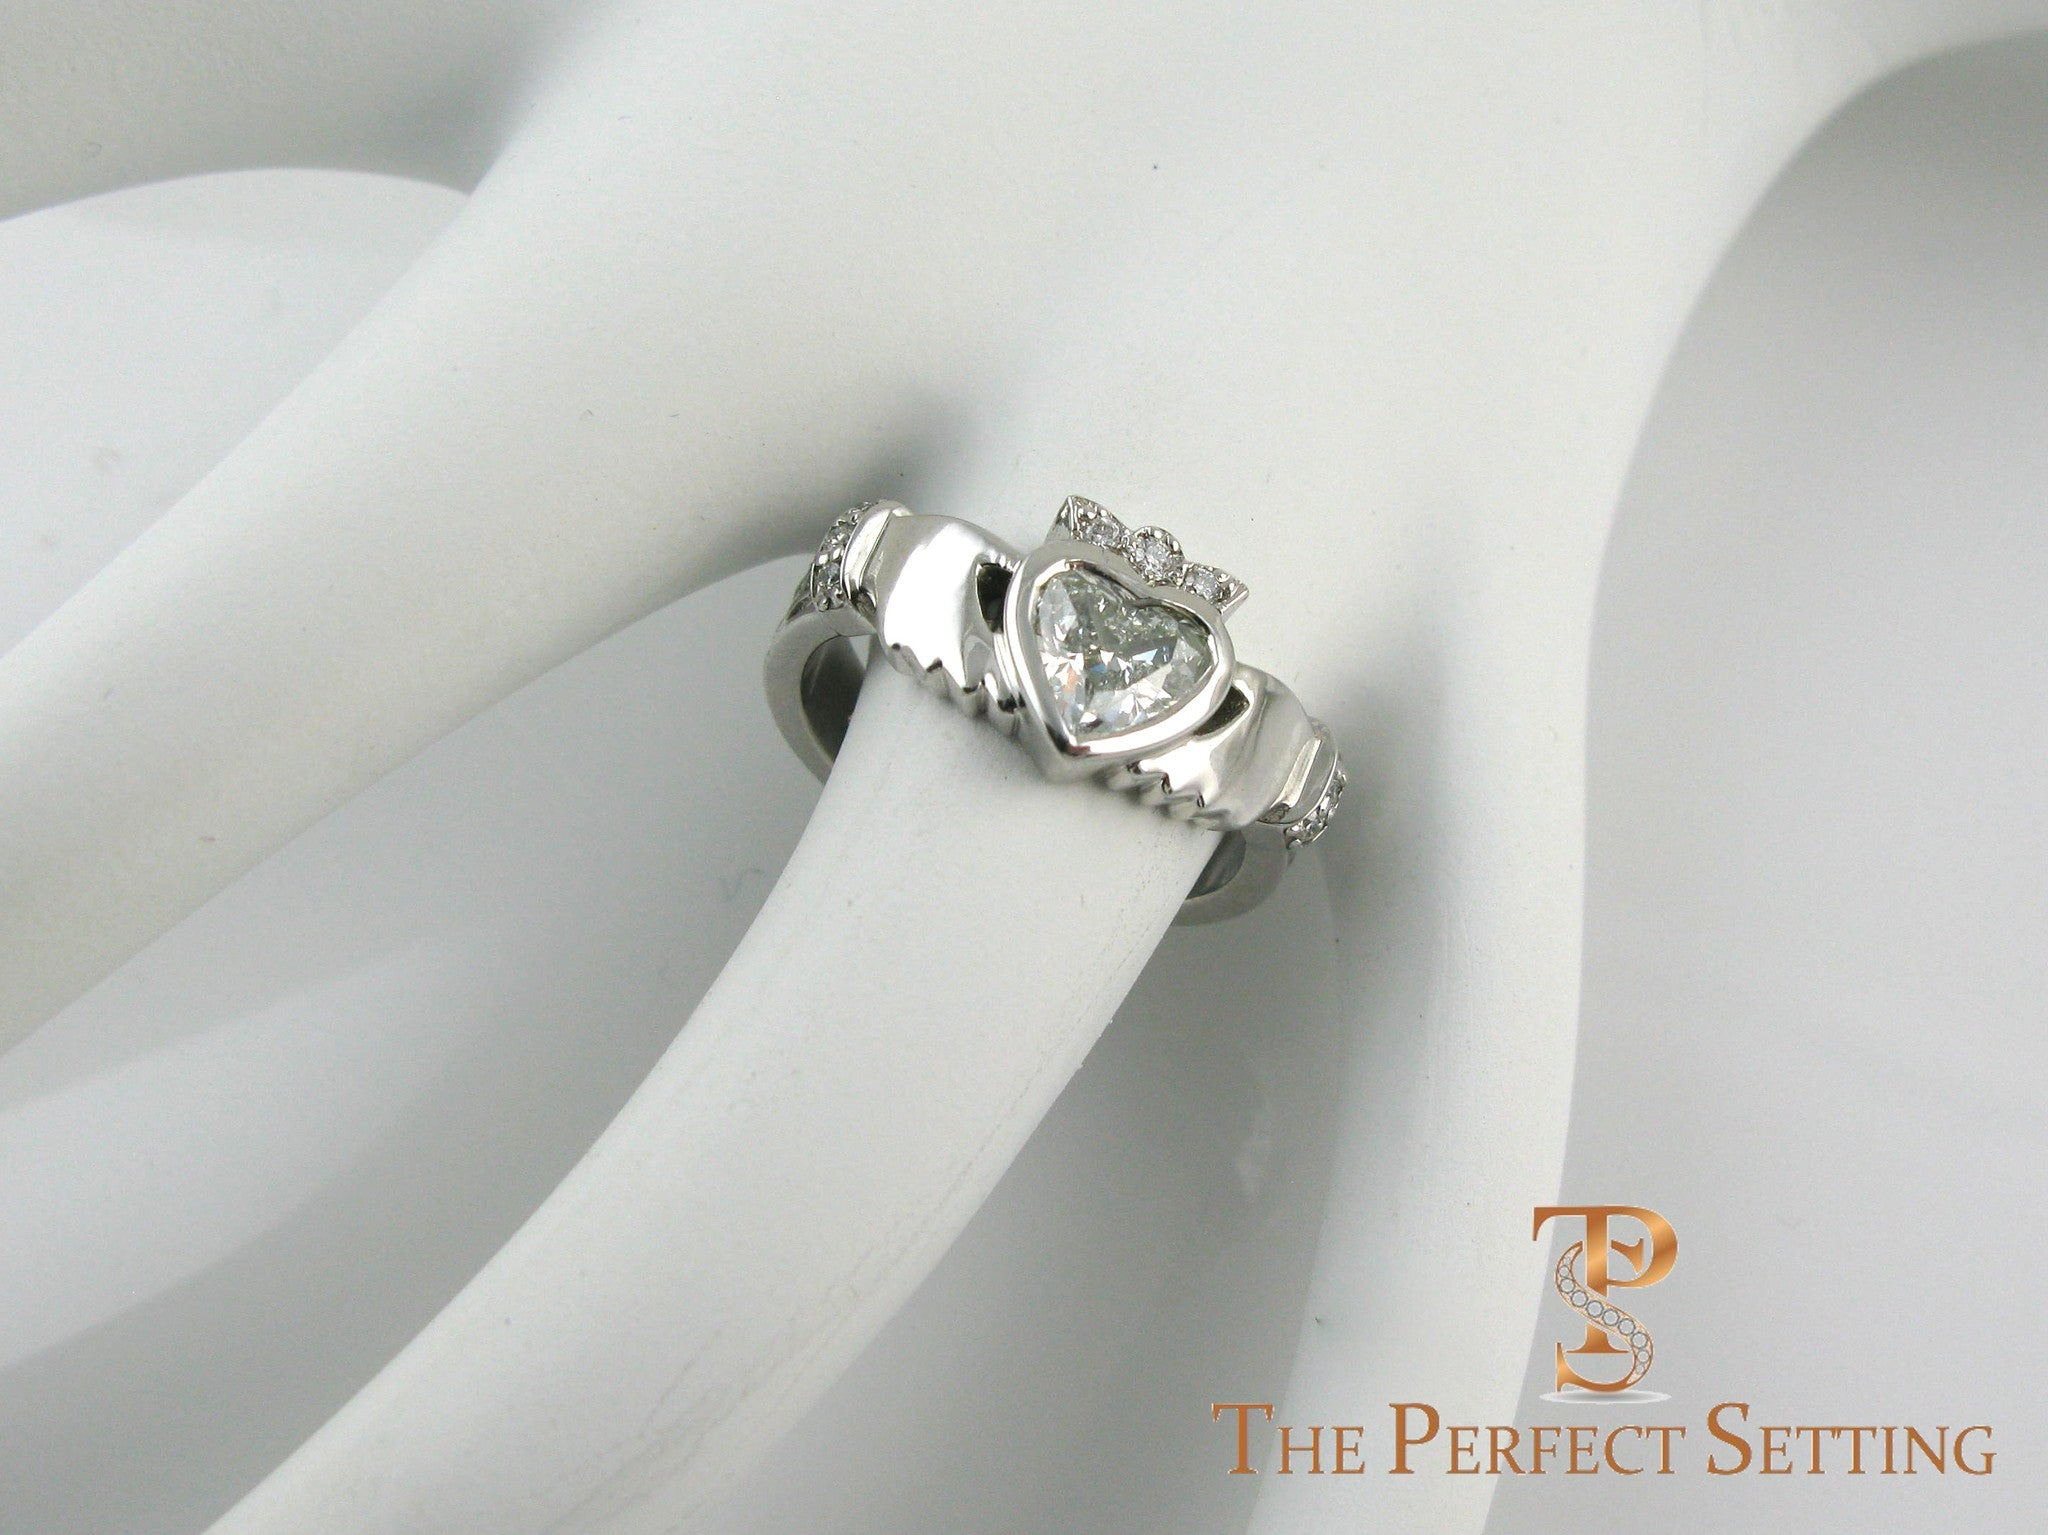 Claddagh Celtic Knot Ring With Diamond Heart The Perfect Setting